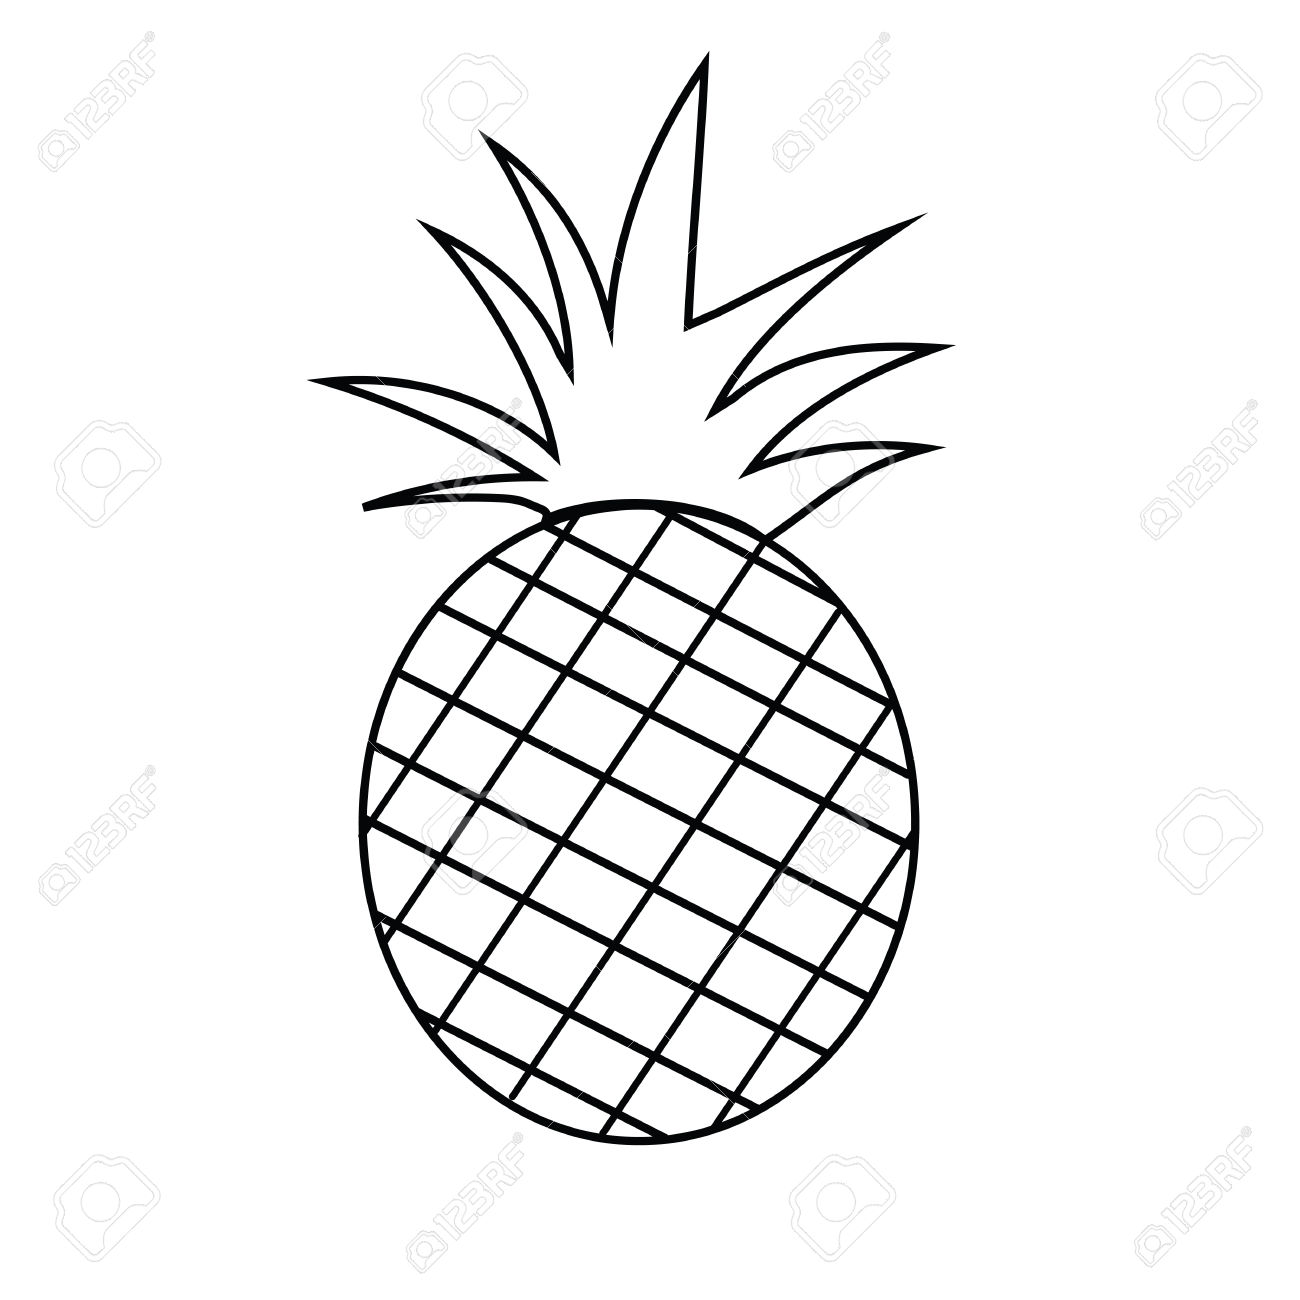 1300x1300 Unbelievable Pineapple Outline Clipart Panda Free Images Drawing